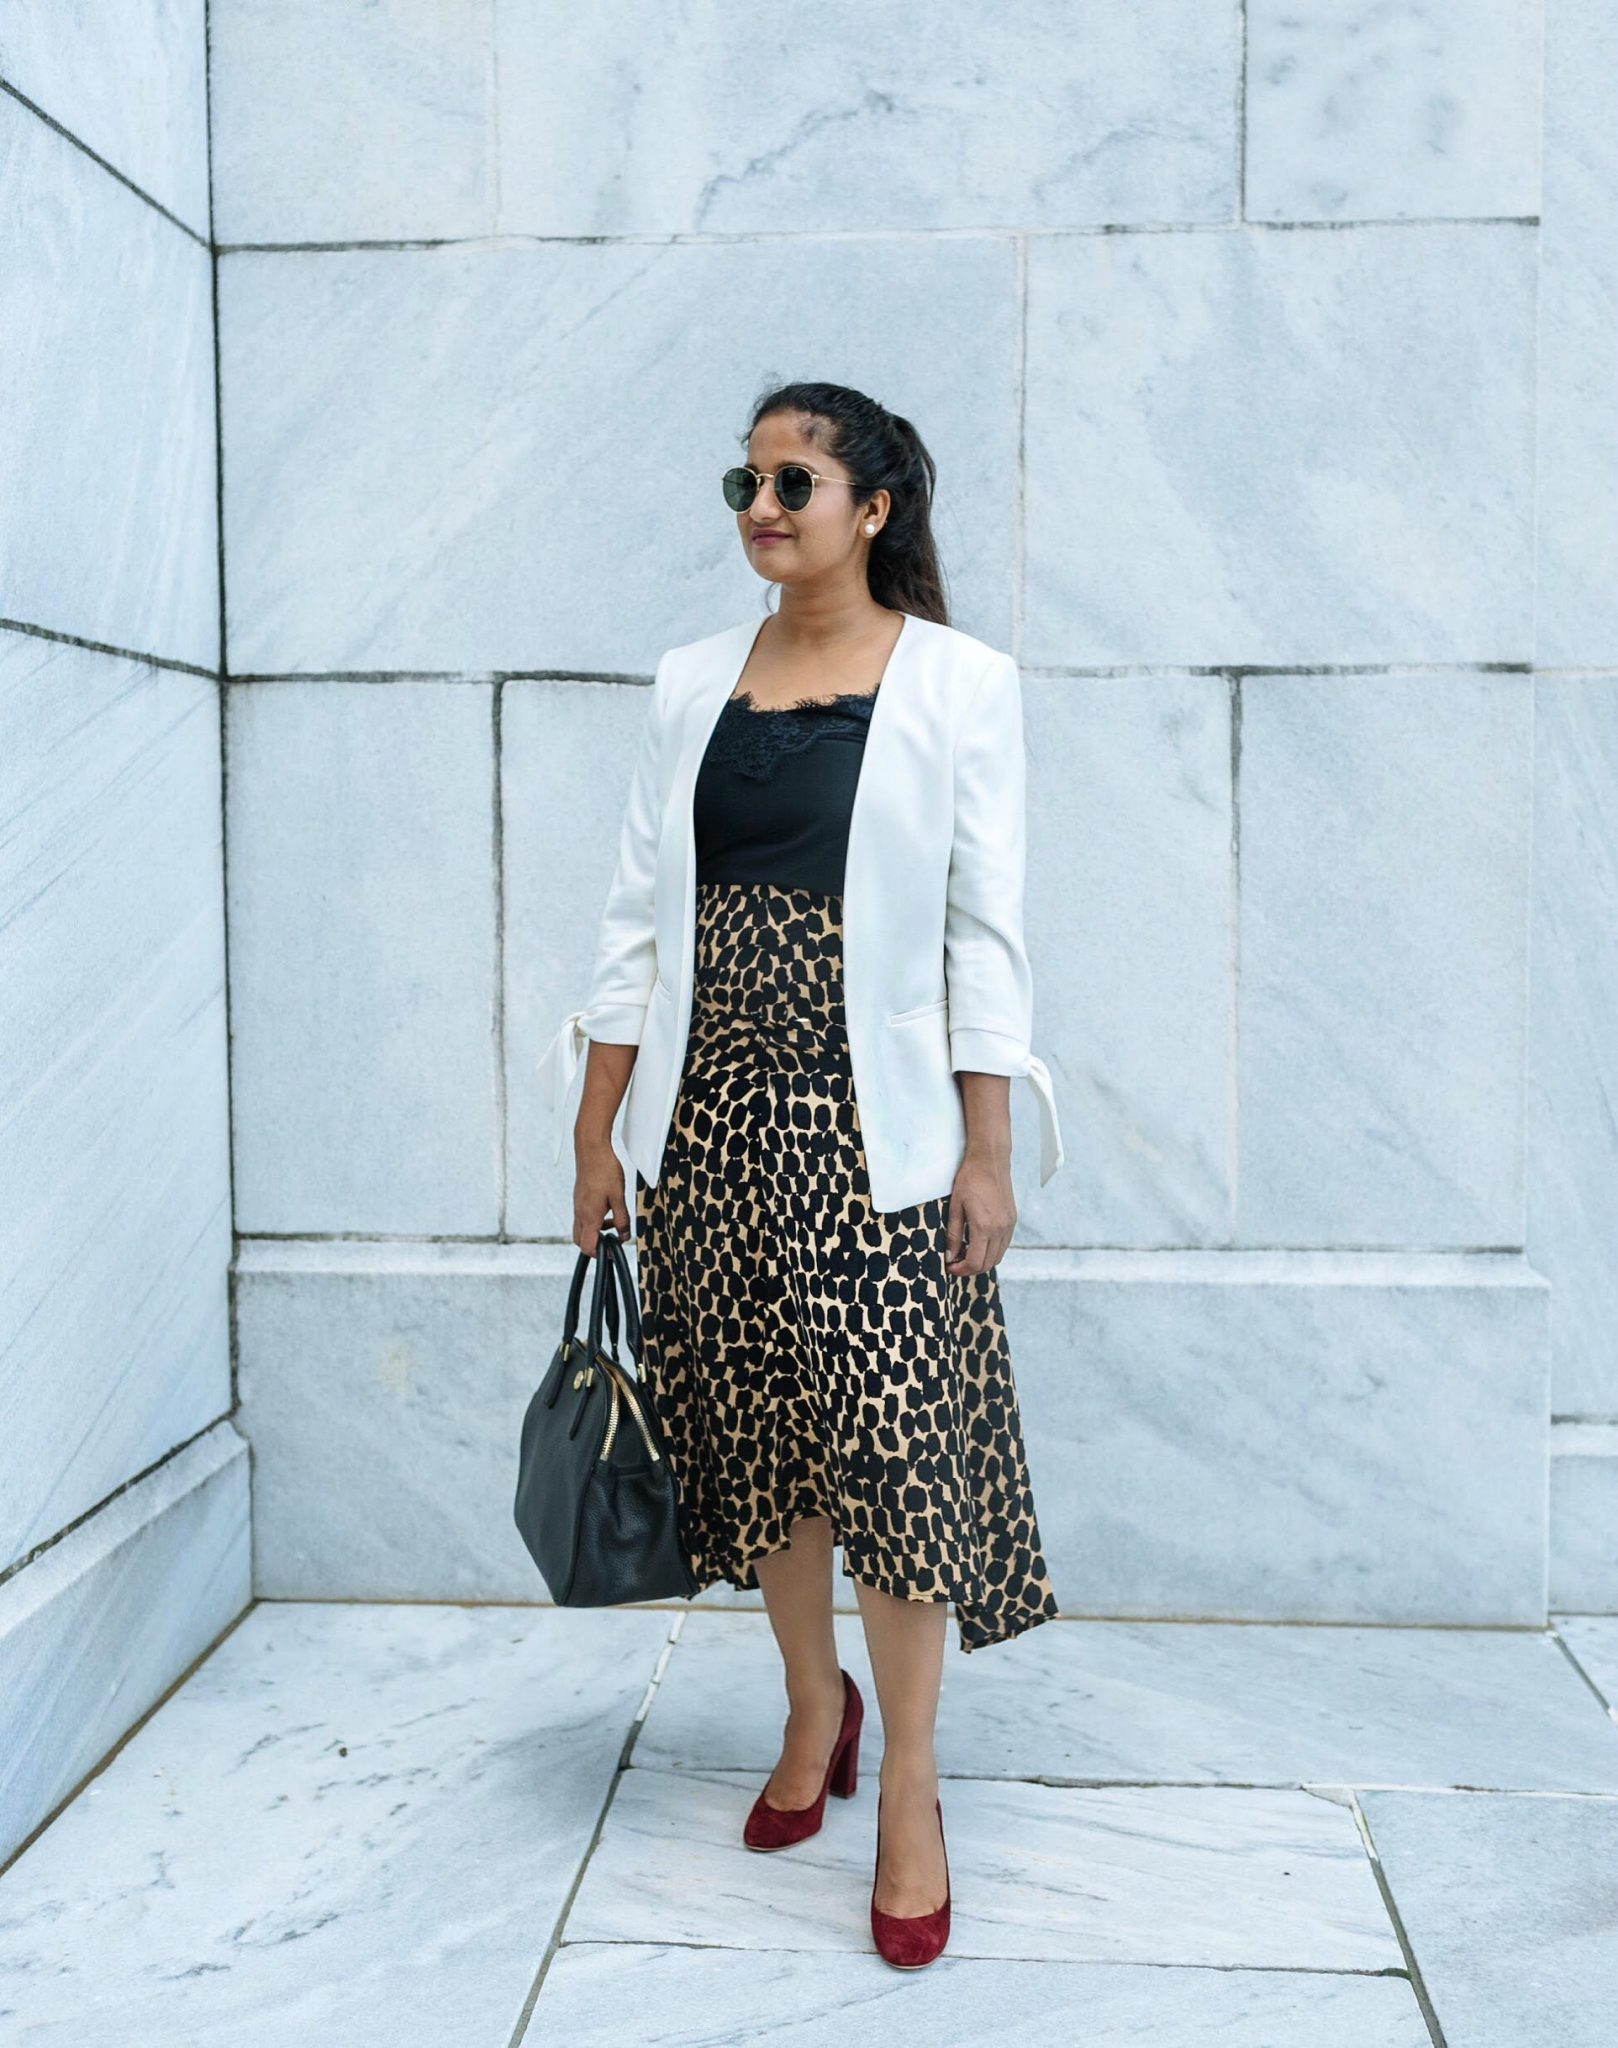 wearing target who what wear asymmetrical hem slip skirt in leopard print skirt | Colorful Fall Work Outfits featured by popular US modest fashion blogger, Dreaming Loud